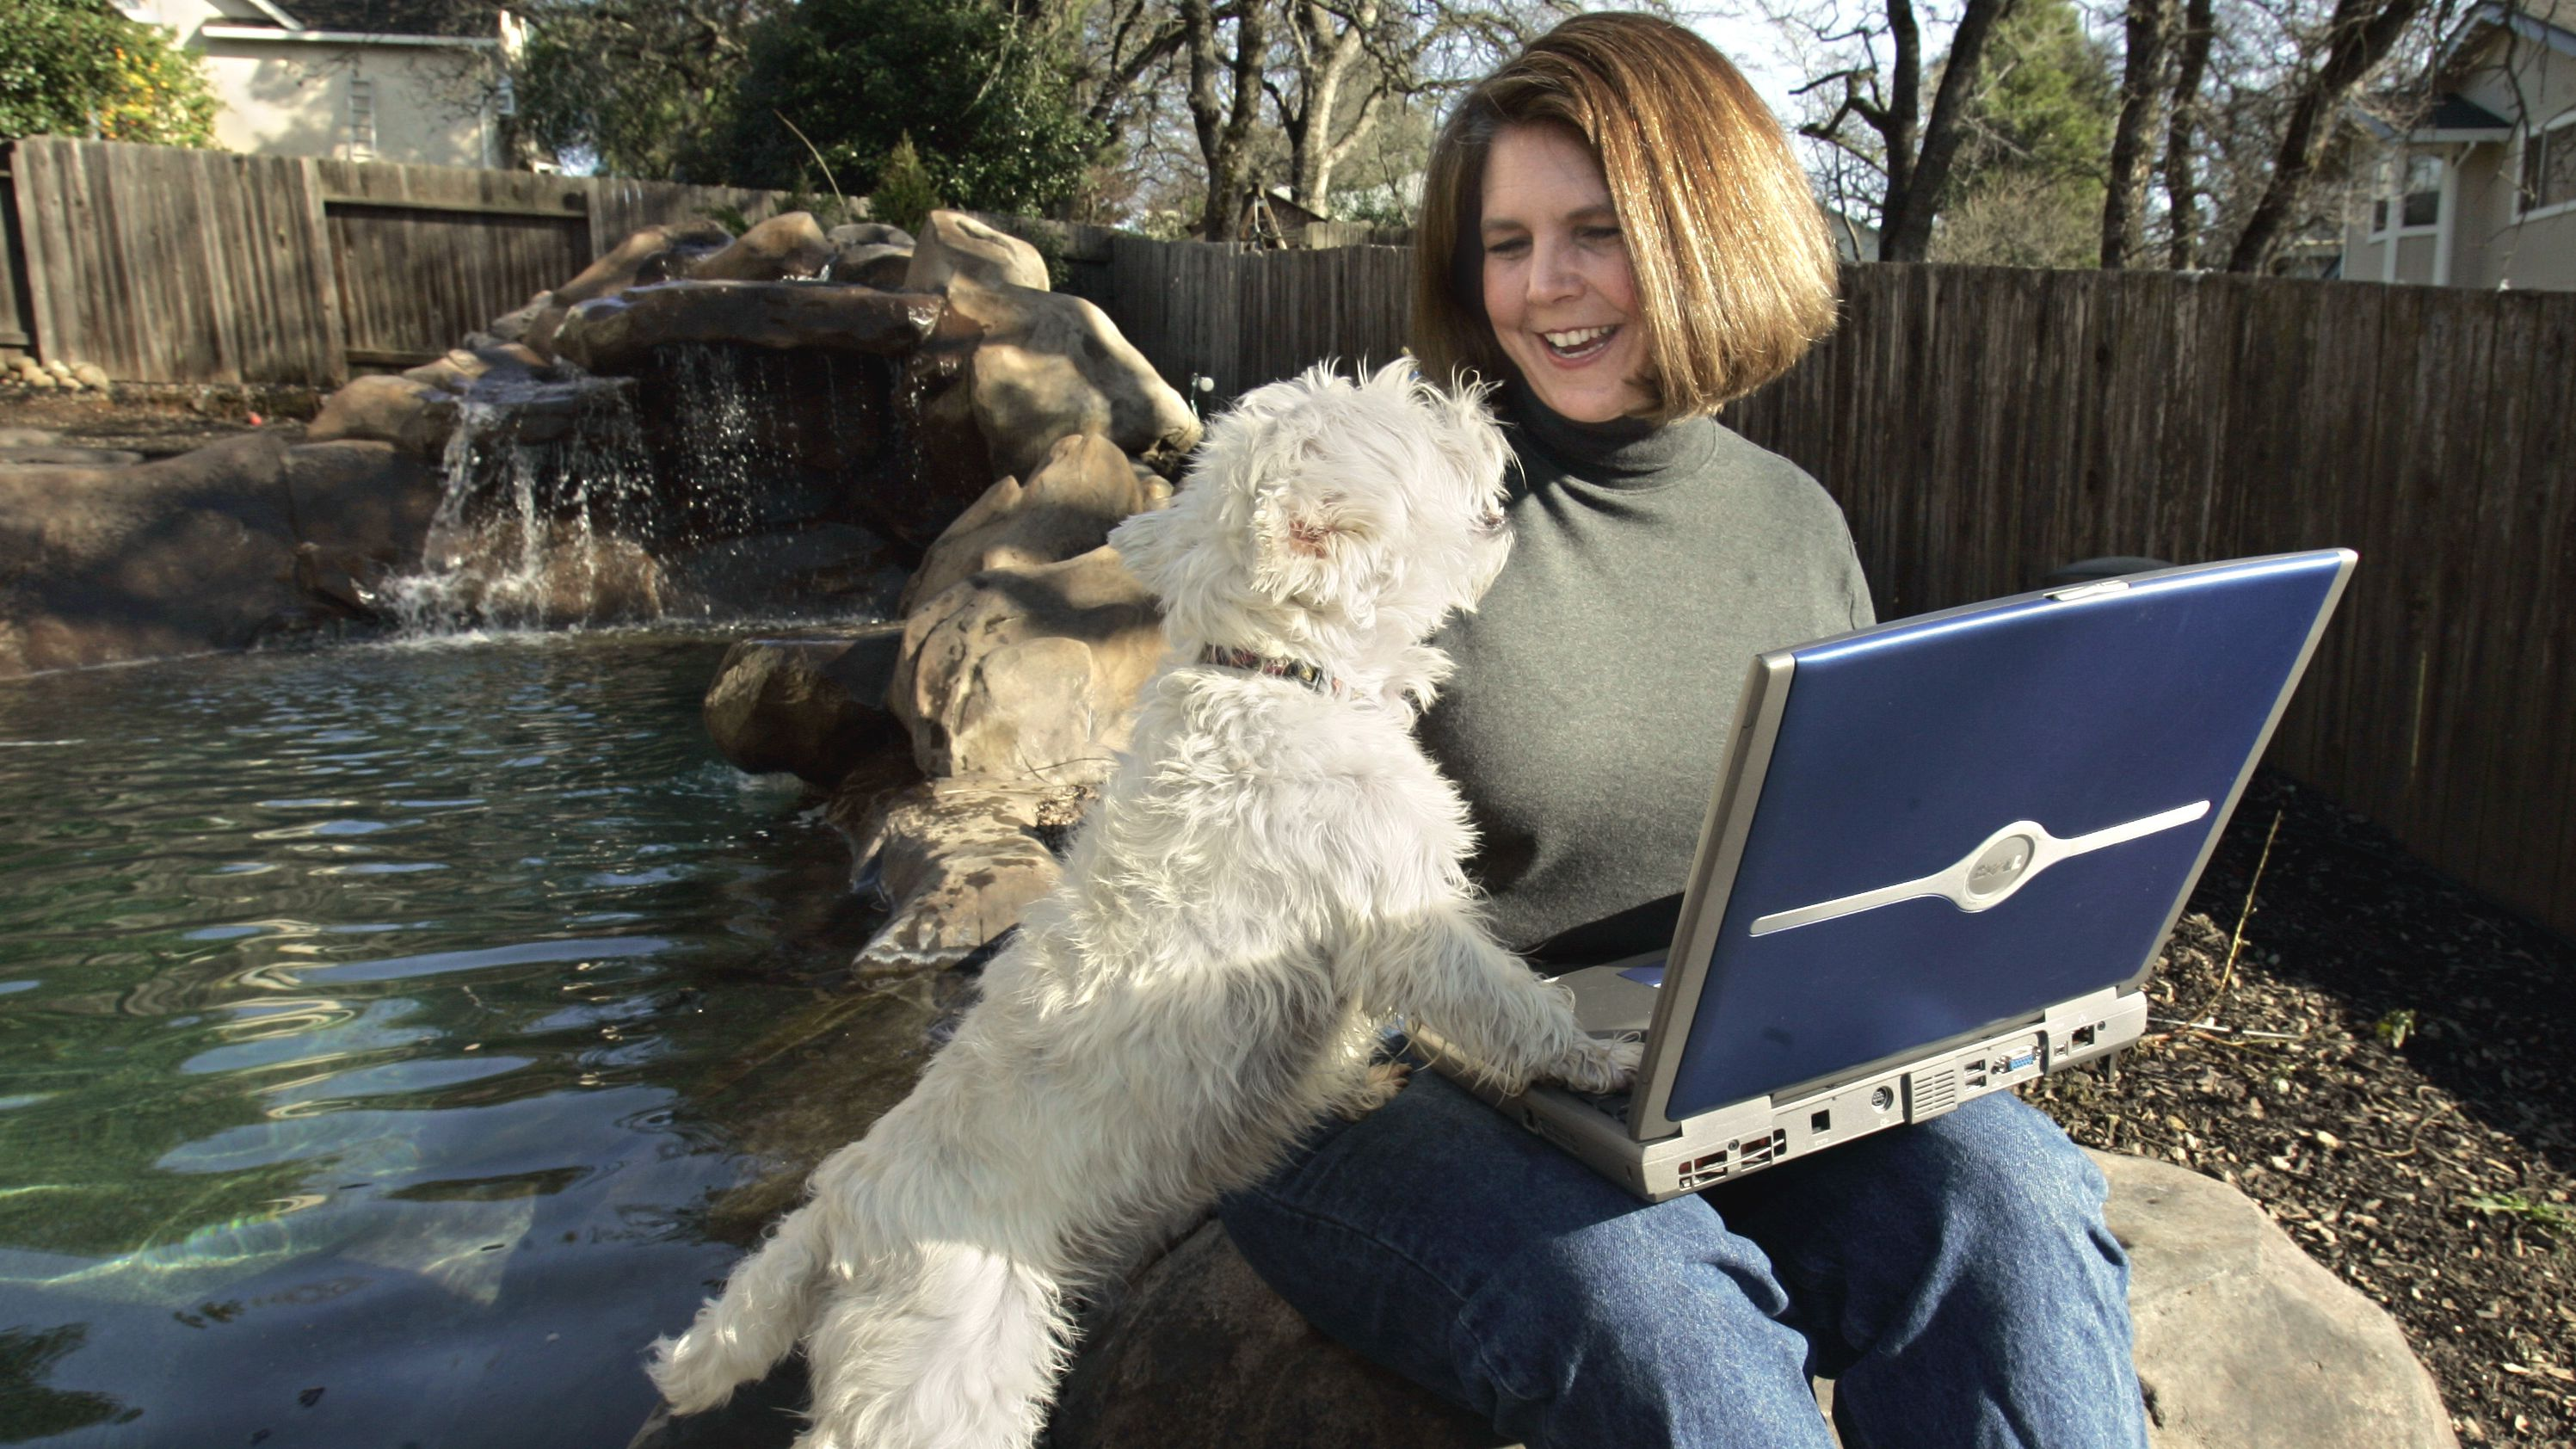 ** ADVANCE FOR TUESDAY, FEBRUARY 7 ** Cheryl Demas,creator and editor of wahm.com, an online magazine for work-at-home mothers, takes a break to pet the family dog, Yoshhi, while working outside by the swimming pool at her Folsom, Calif., home, Friday, Feb. 3, 2006. Using her laptop to do most of her work, Demas moves around her home to do her work and instead of being confined to one location.(AP Photo/Rich Pedroncelli)